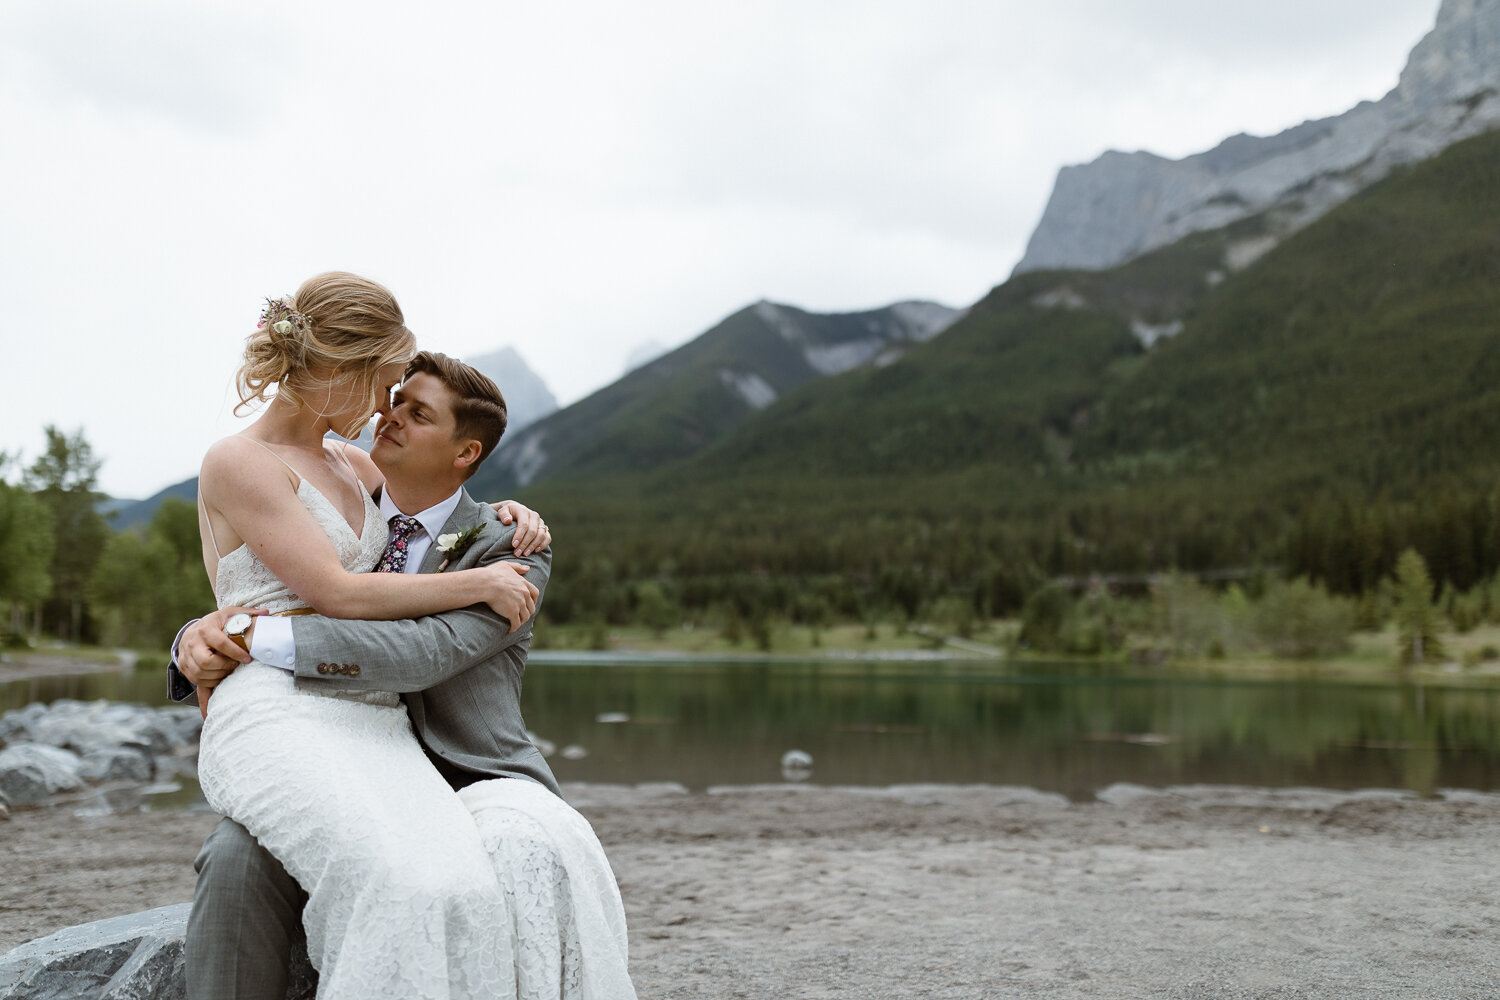 100-Canmore-Alberta-Real-Wedding-Best-Wedding-Photographers-164.JPG